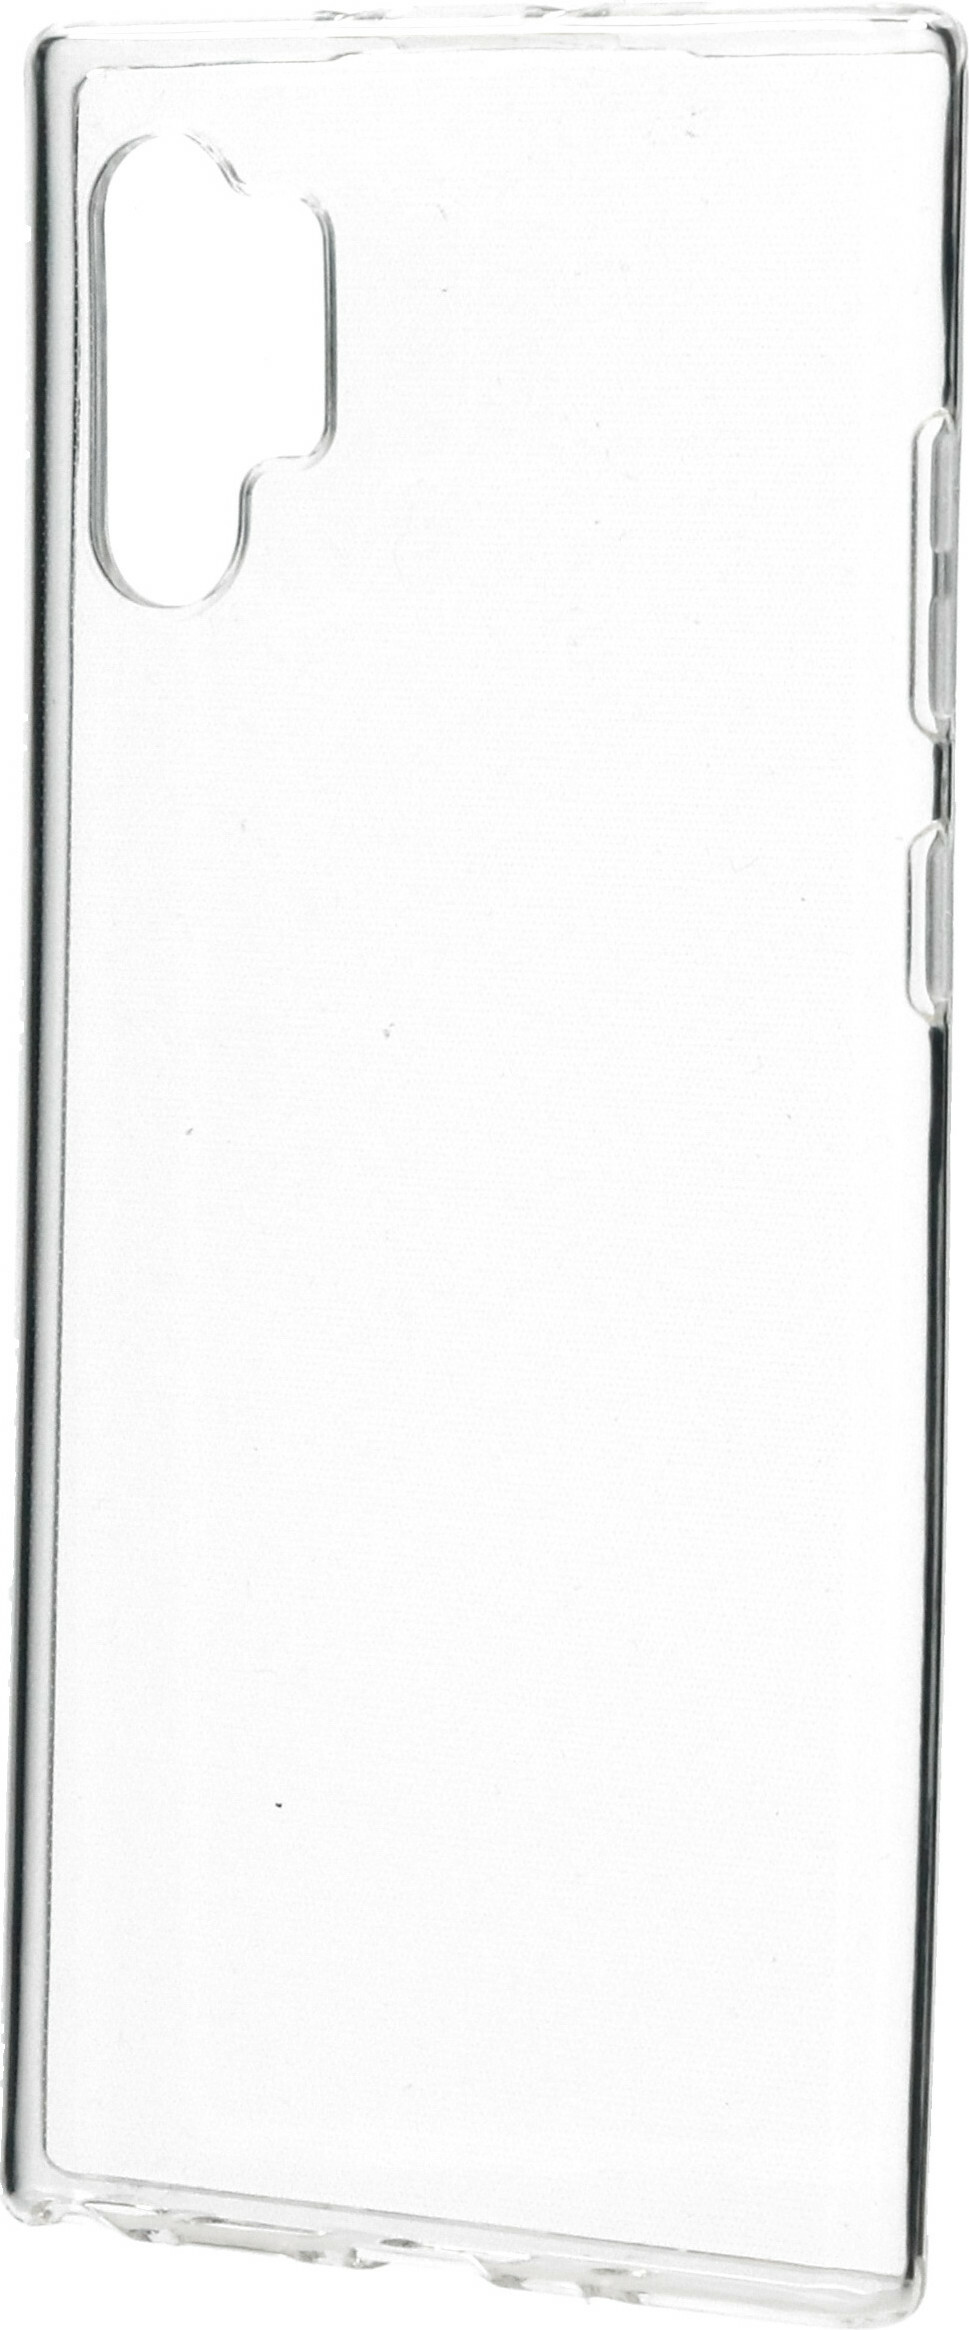 Mobiparts Classic TPU Case Samsung Galaxy Note 10 Plus Transparent